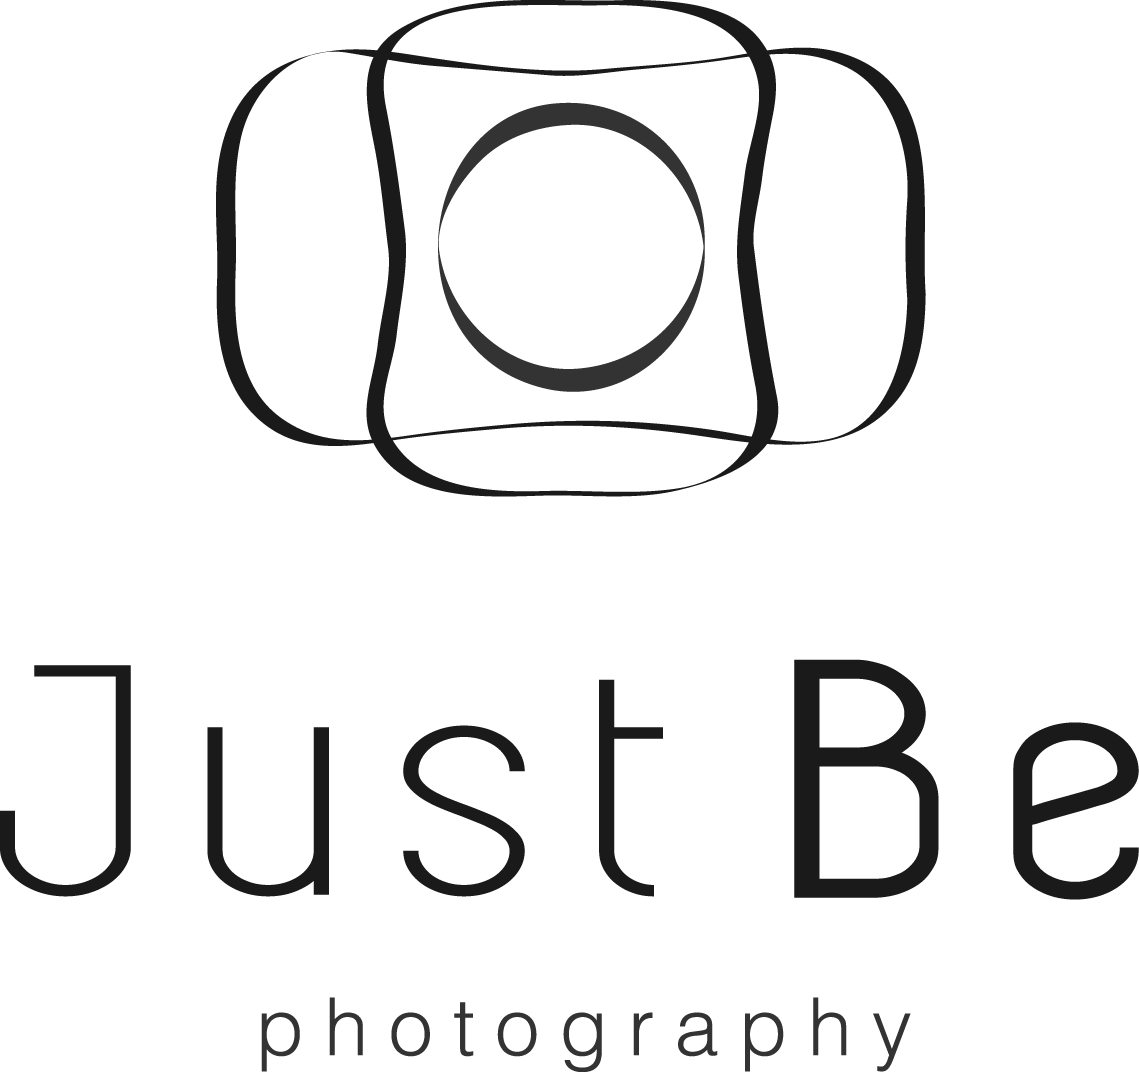 Just Be Photography